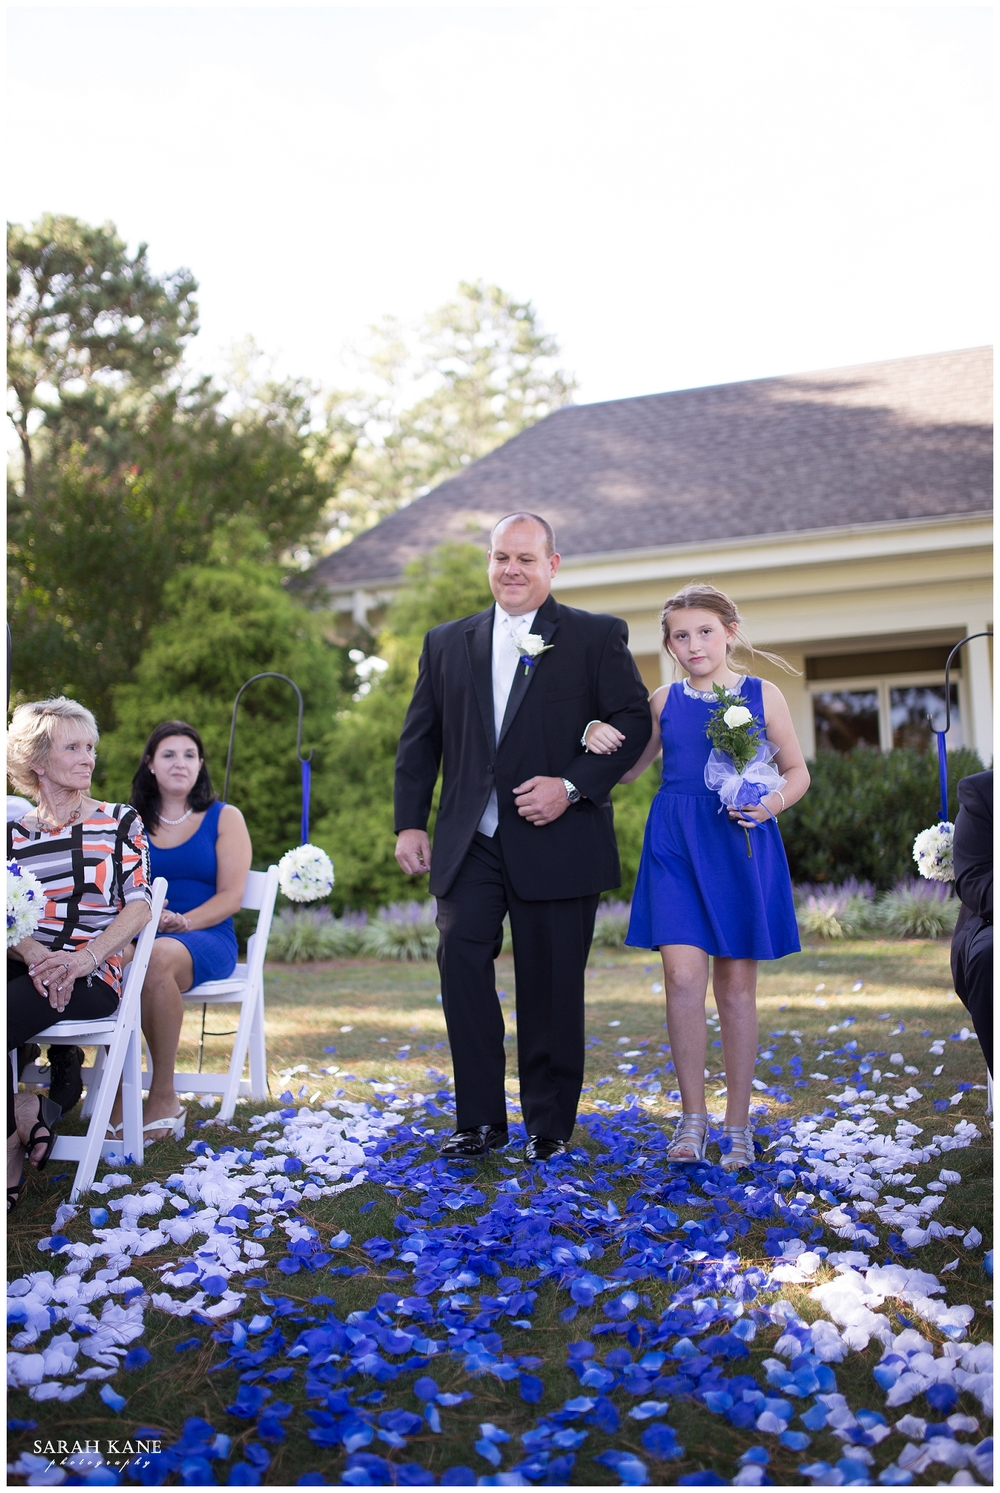 Blog - Petersburg VA Wedding - Sarah Kane Photography 233.JPG